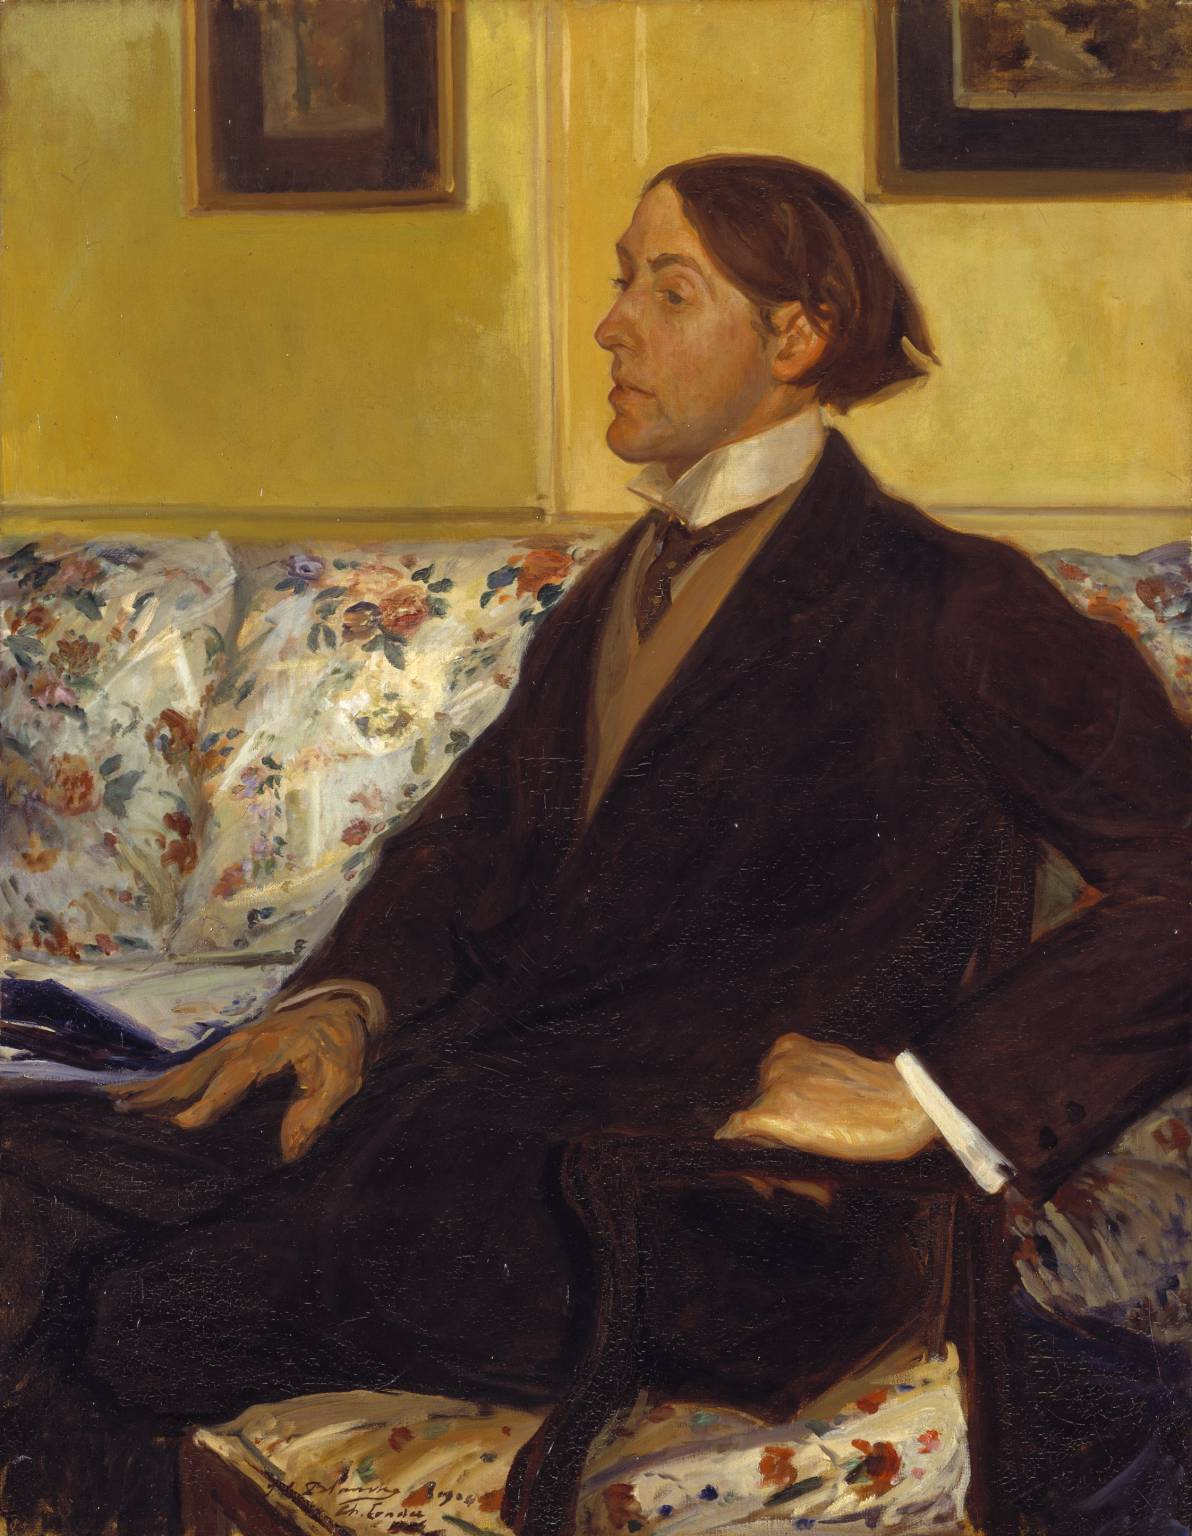 Charles Conder by Jacques-Emile Blanche, 1904